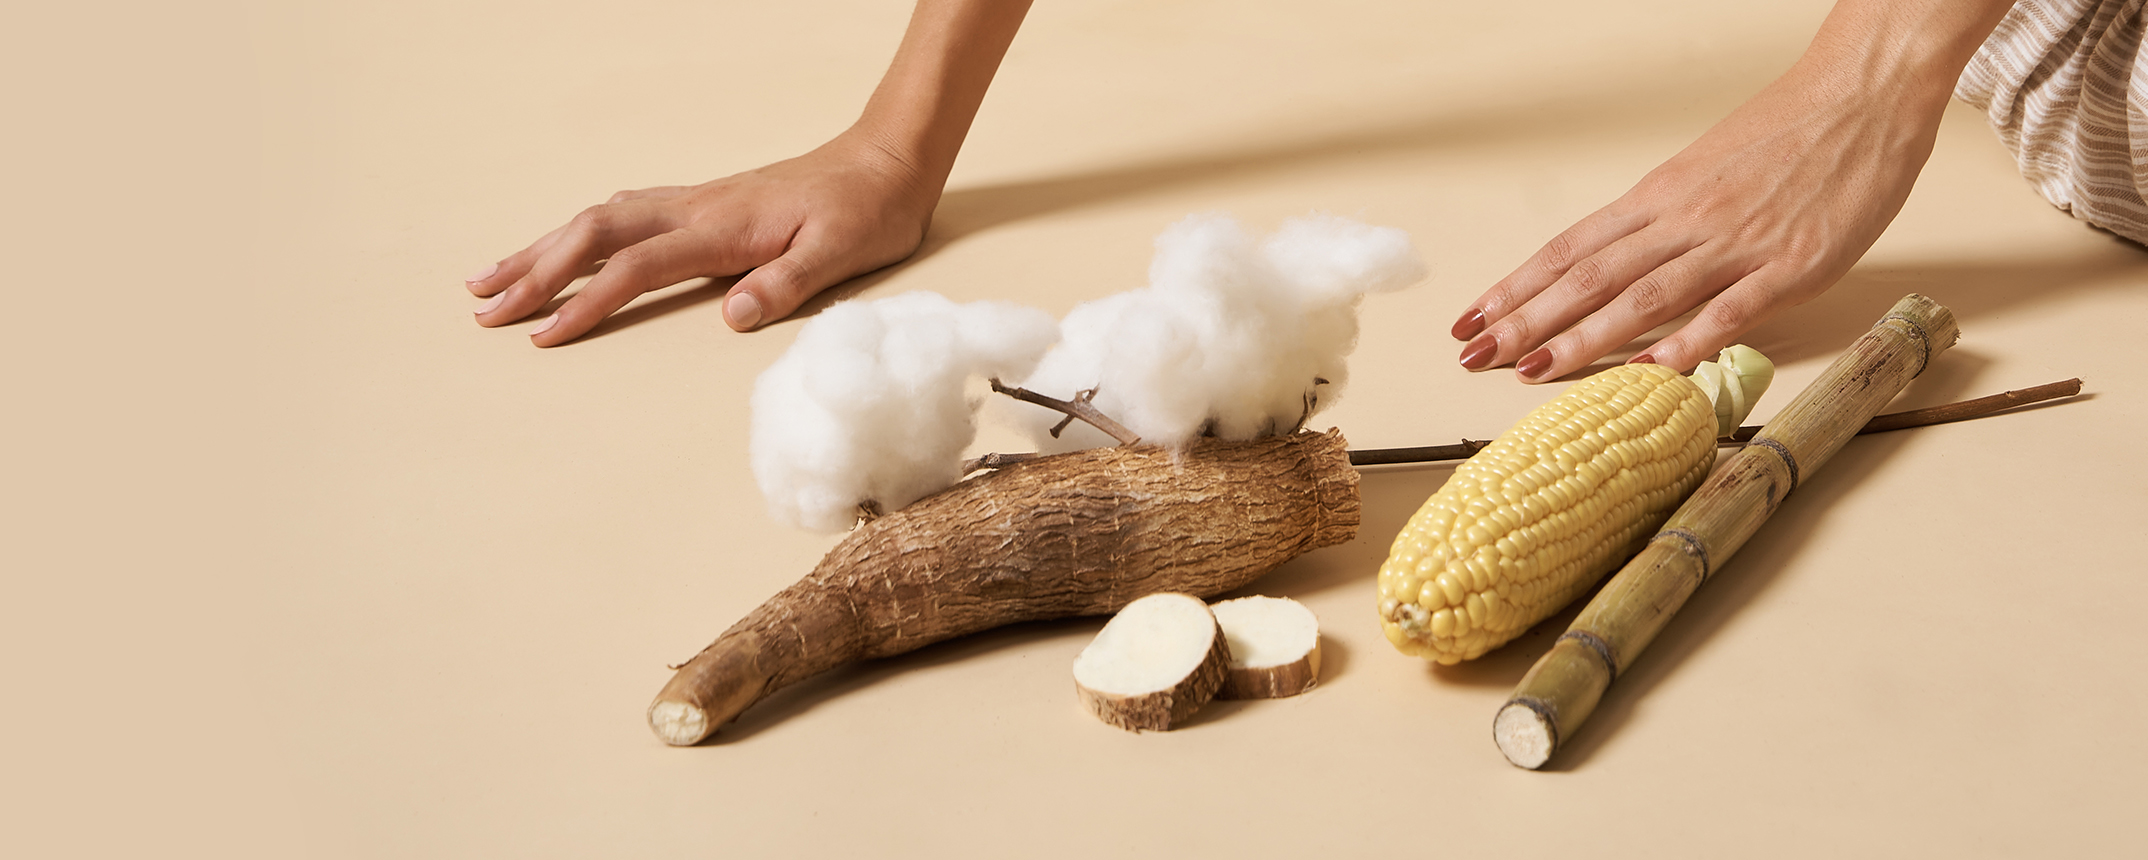 woman's hands on the floor wearing red nail polish by sienna next to cotton, sugar cane, corn and cassava on beige background